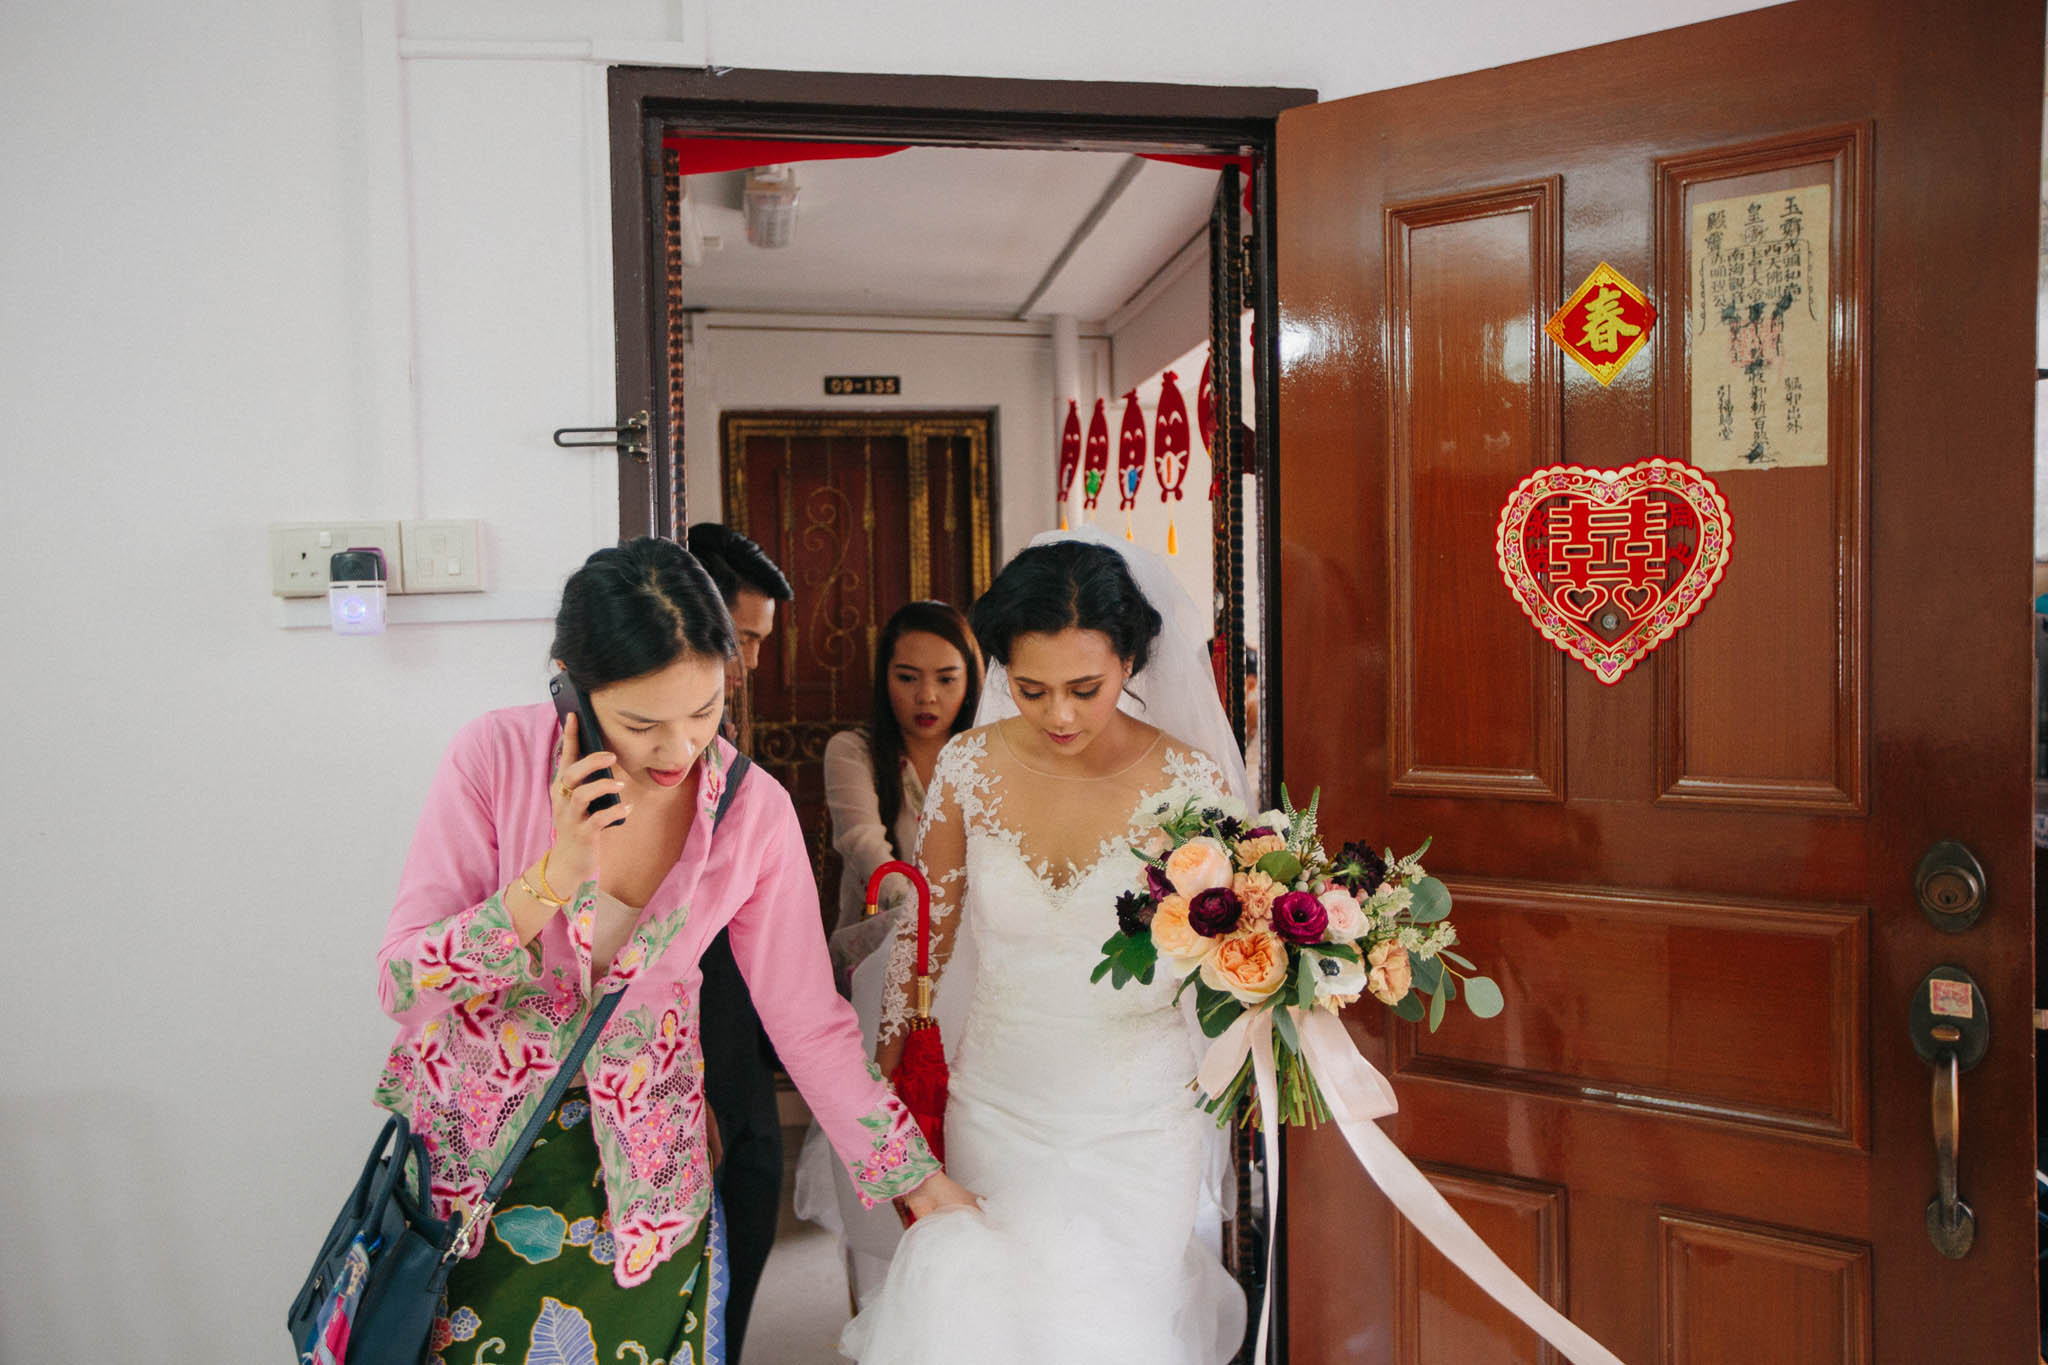 singapore-wedding-photographer-wedding-hafiana-teck-kuan-022.jpg